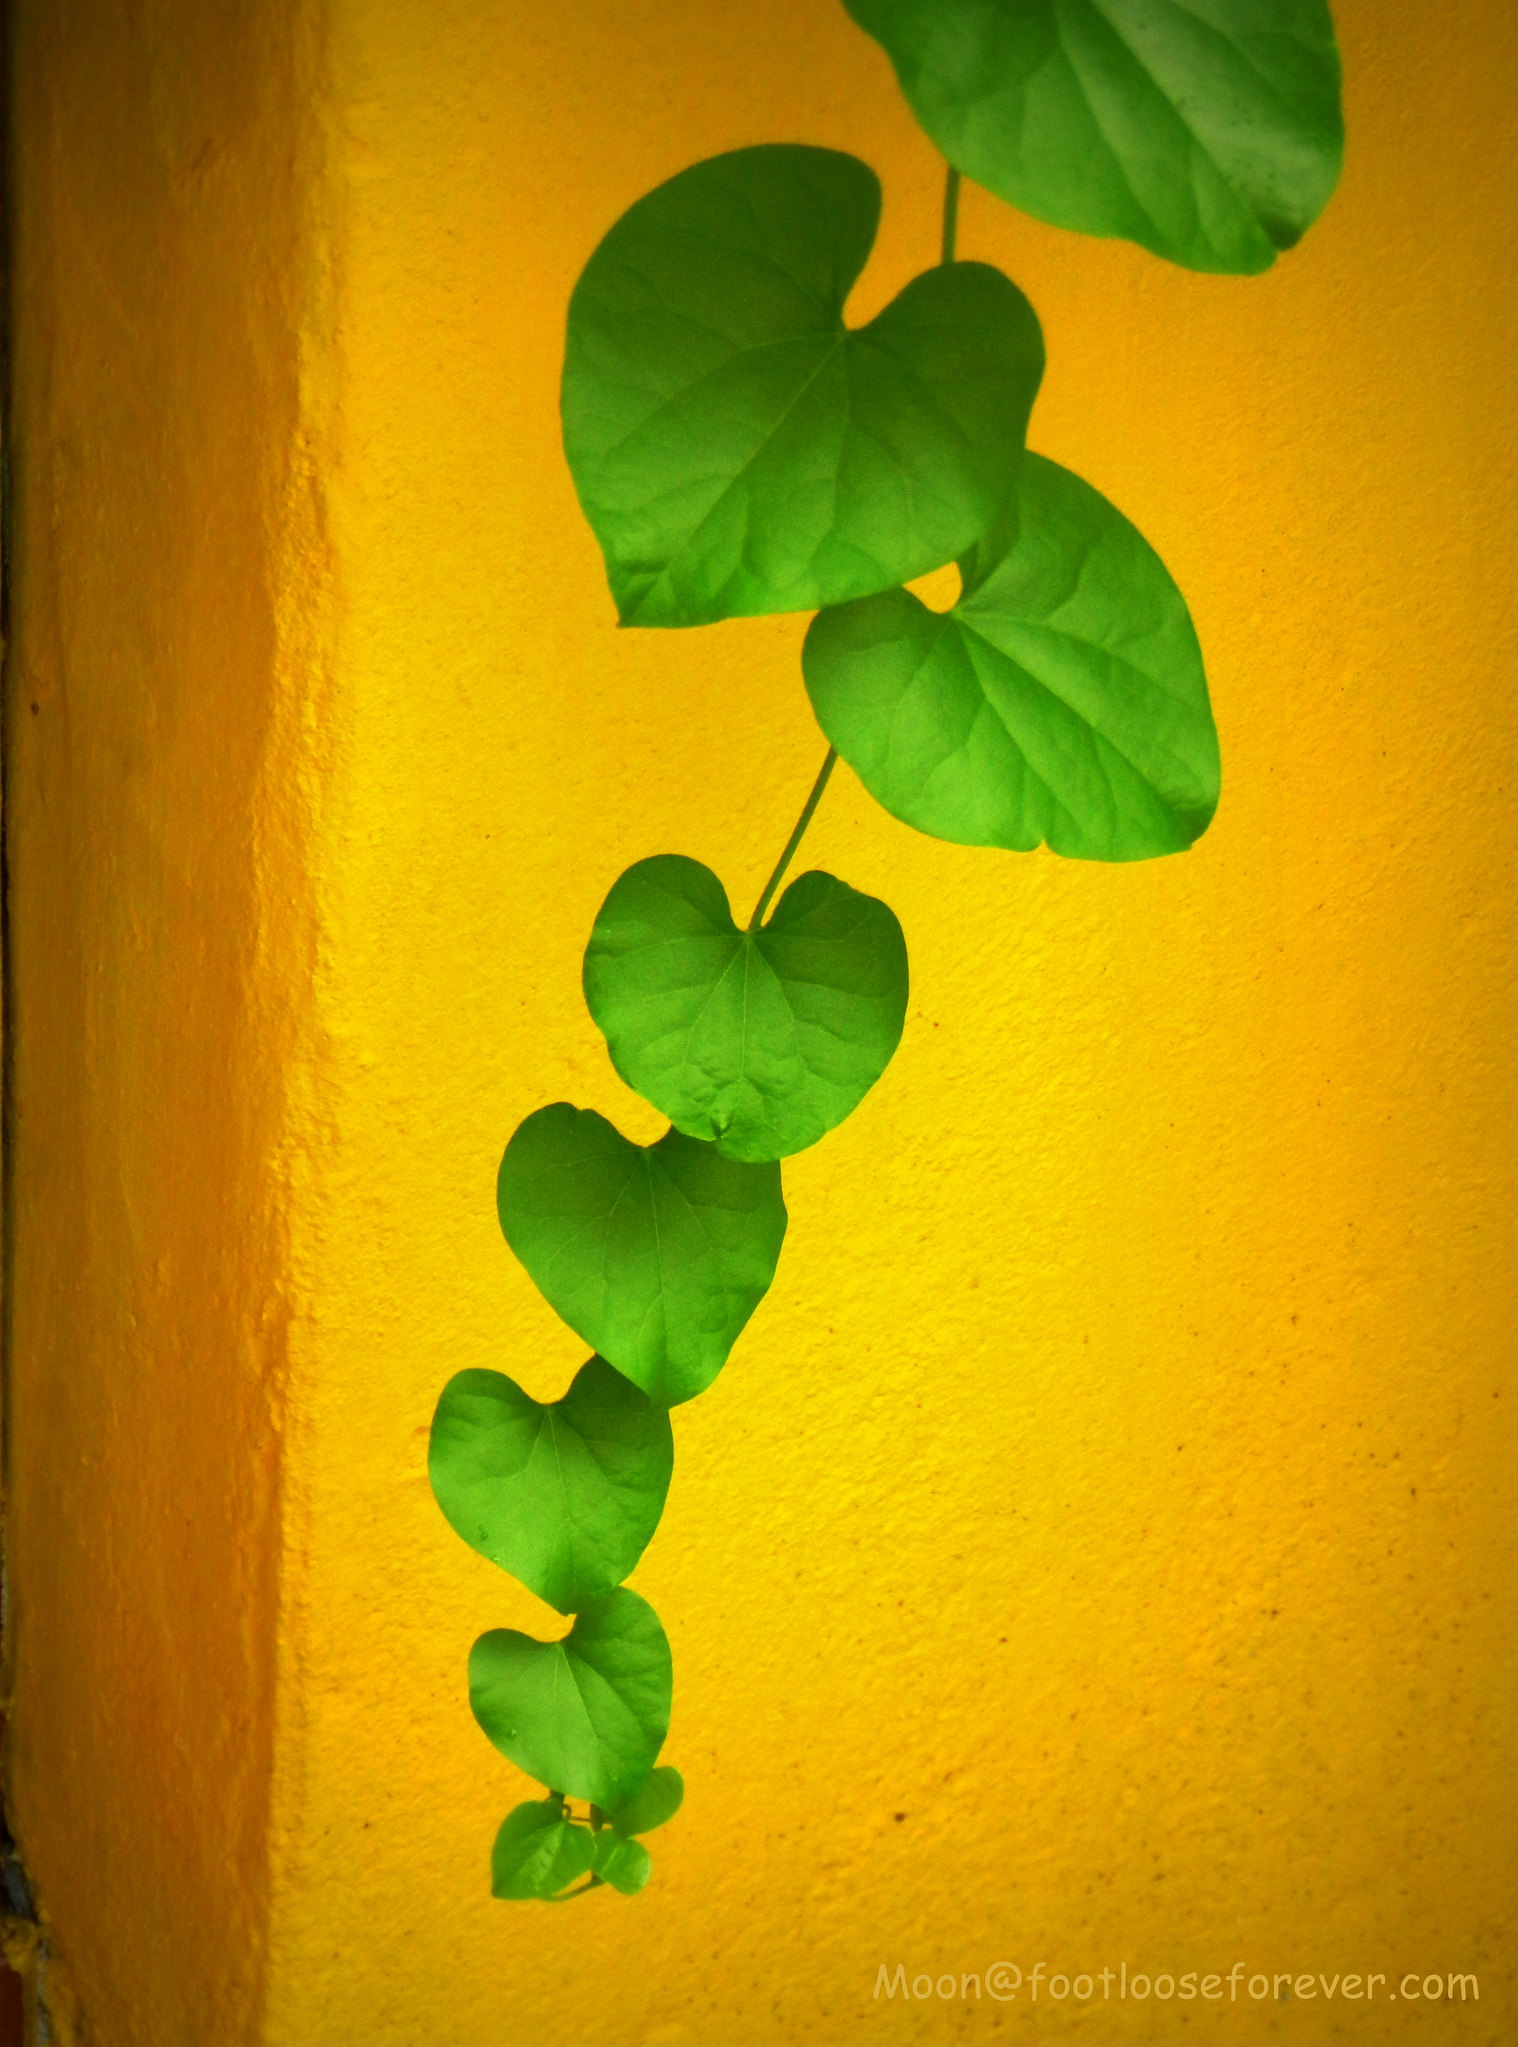 green leaves, green vine, yellow wall, minimalist photography